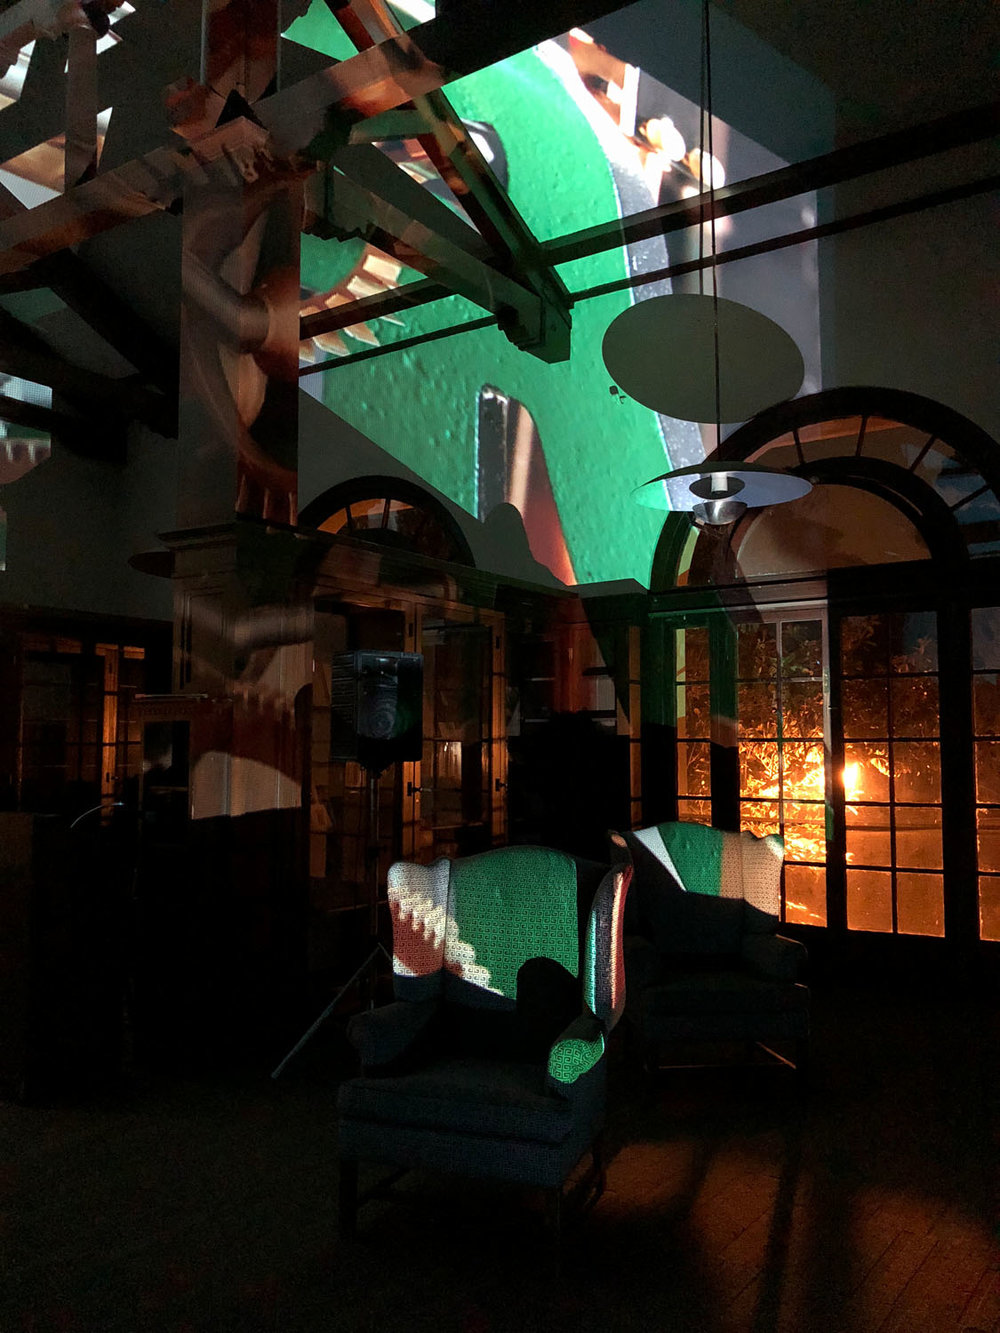 Clock Tock Tick Too in Green , 2018, digital video projection,  4 minute loop with sound, size variable   The Bender Room , an evening of new musical works by Kris Force, Brendan Glasson, and Coconut, featuring handmade instruments and video projection by Rebeca Bollinger, performed in the Mills College Bender Room—formerly part of the Margaret Carnegie Library designed by architect Julia Morgan.